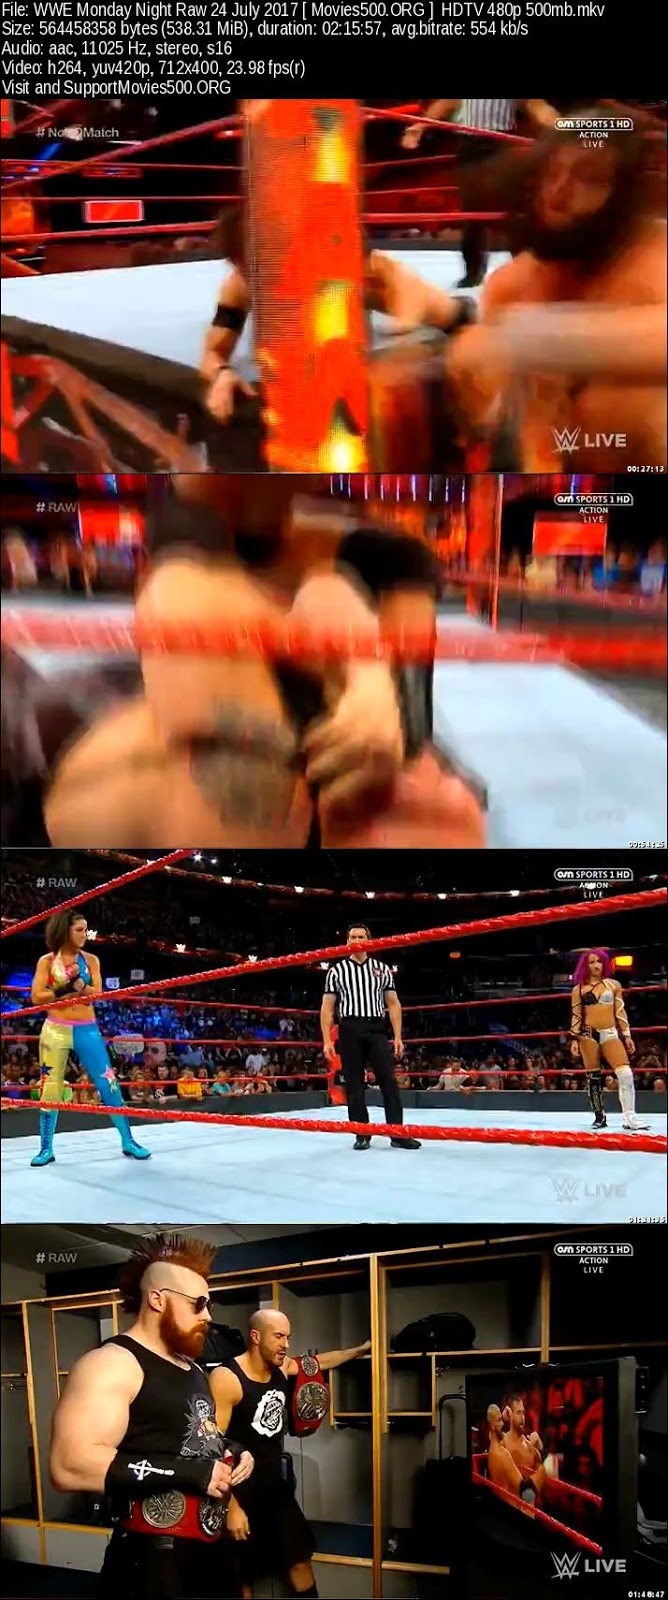 WWE Monday Night RAW 24 July 2017 Full Show 300MB HD Download at xcharge.net